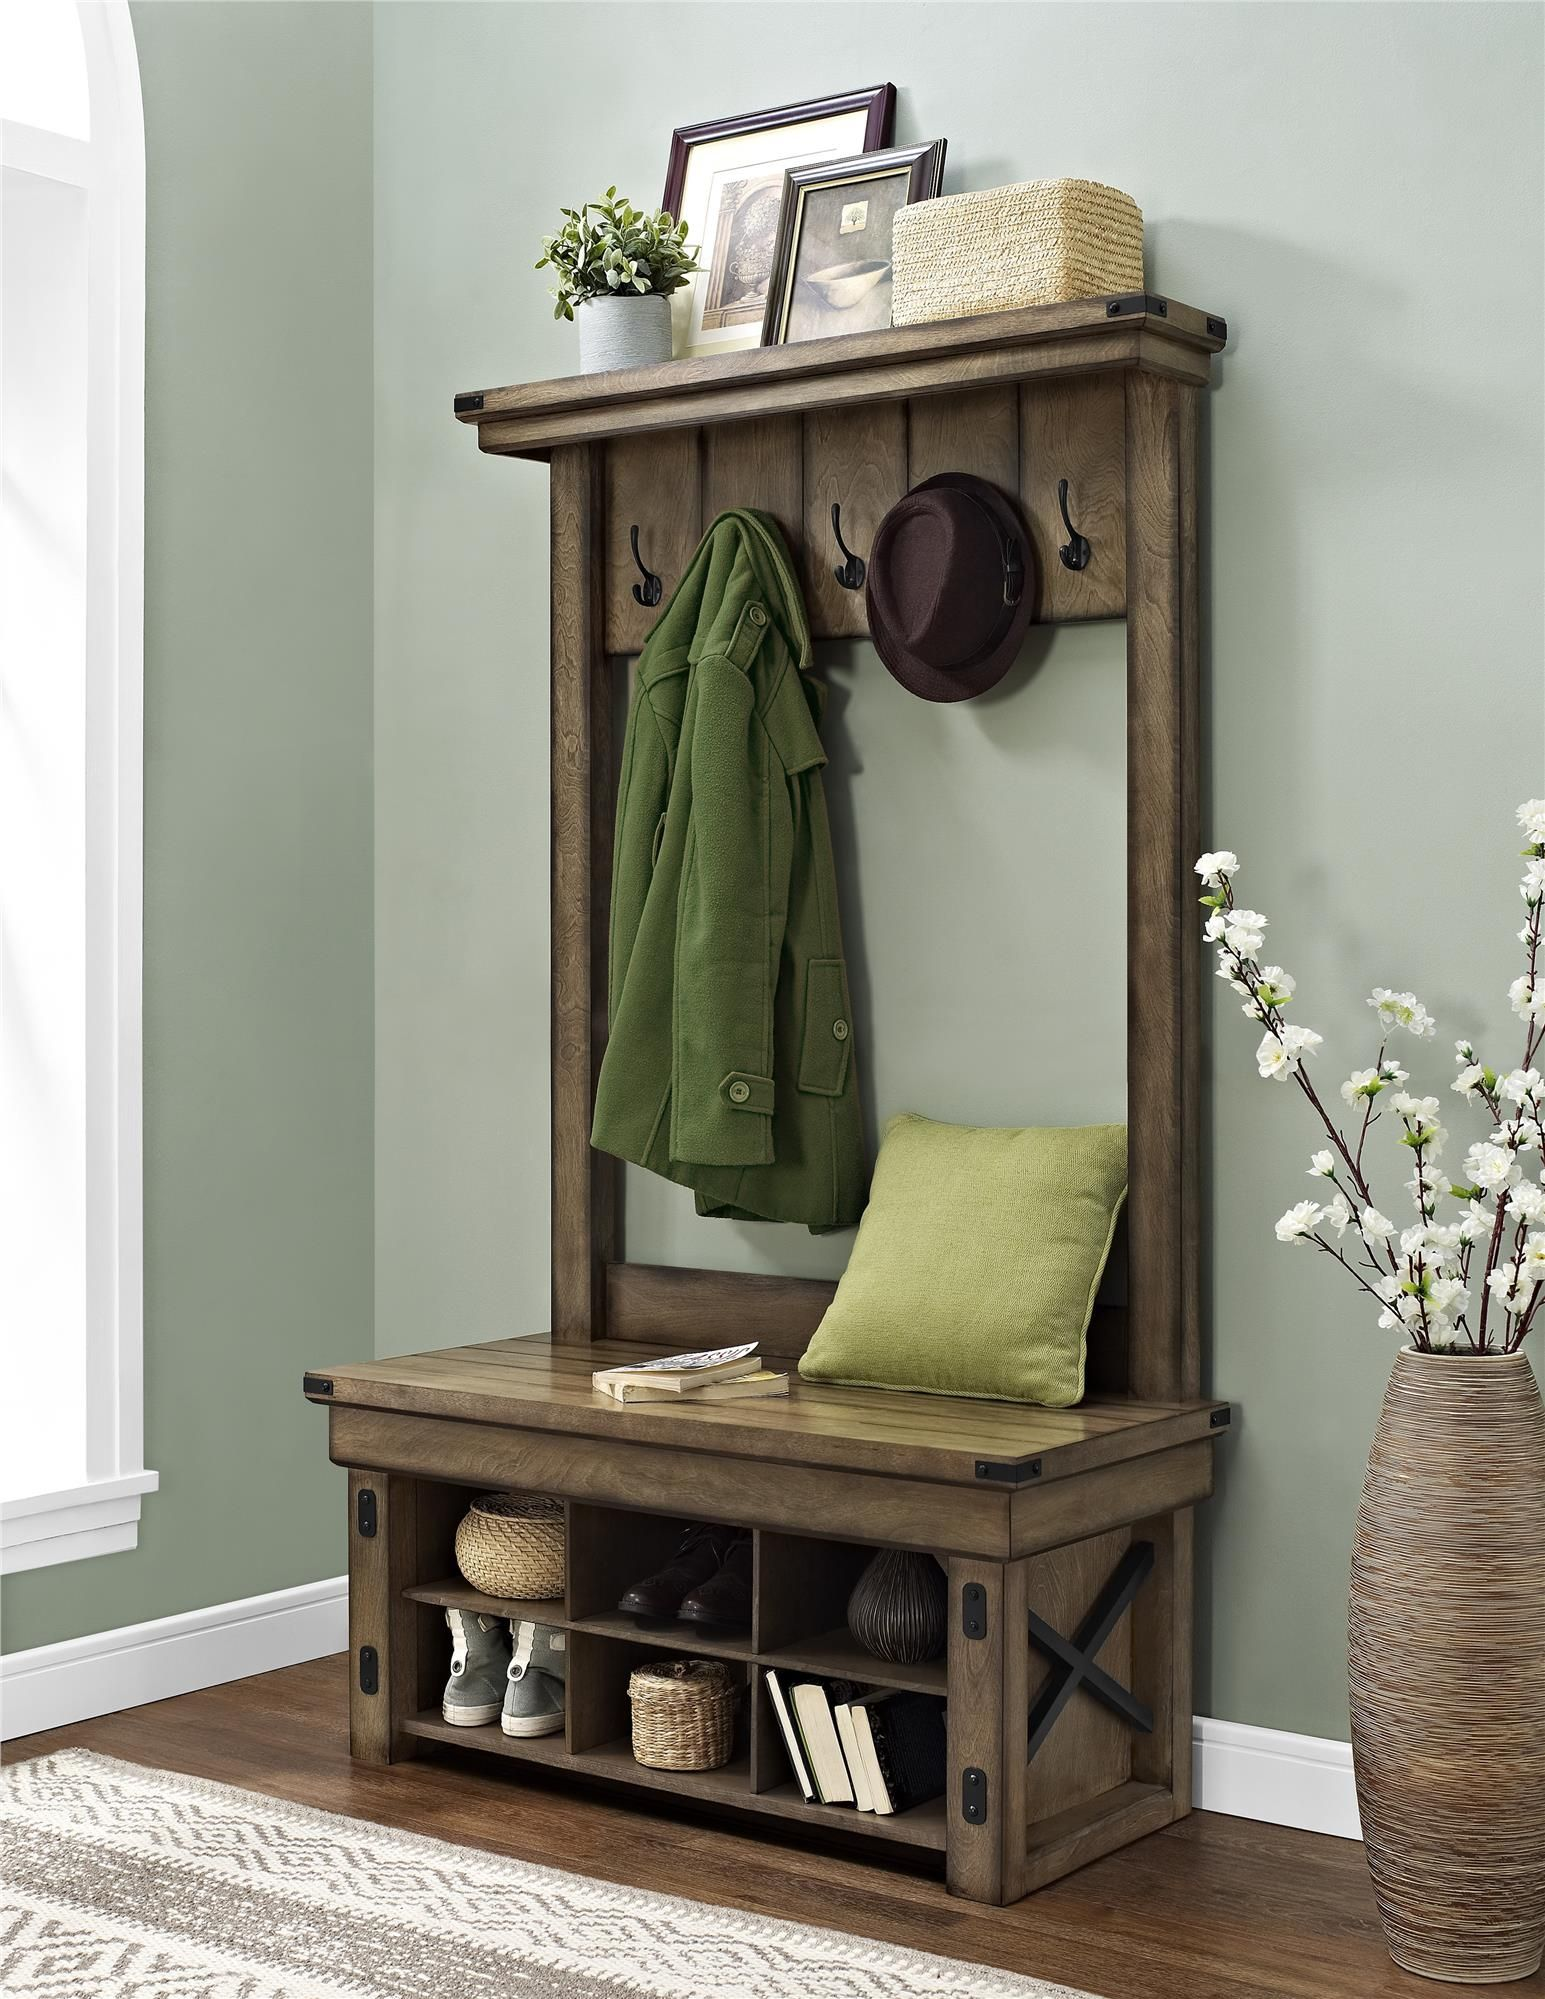 Daisee Entryway Hall Tree With Storage Bench Ashley Furniture Homestore Entryway Hall Tree Hall Tree With Storage Hall Bench With Storage Hall tree benches with storage